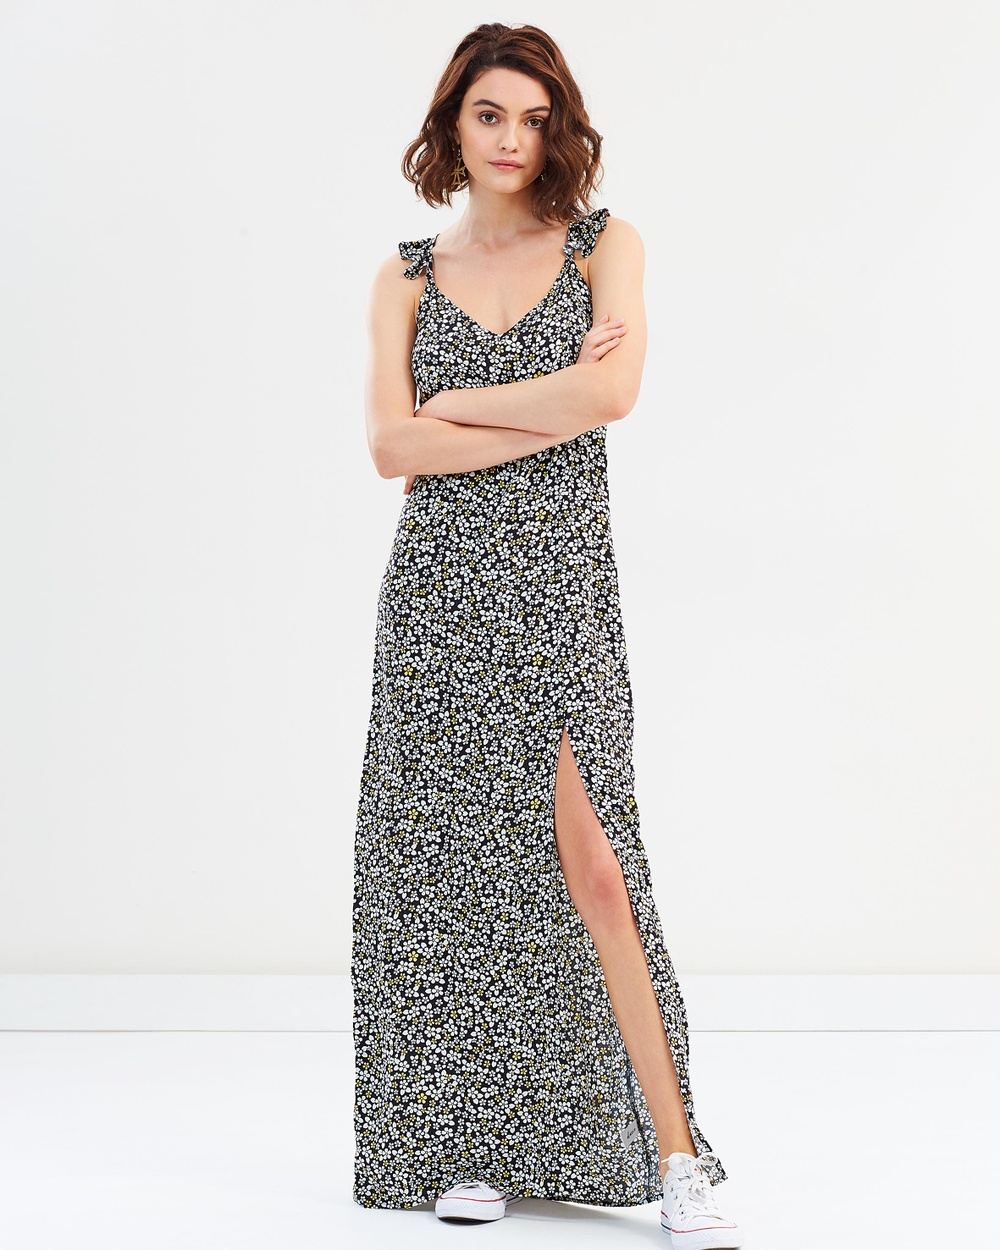 Dazie Daring Daisy Split Maxi Dress Printed Dresses Black Base Floral Daring Daisy Split Maxi Dress